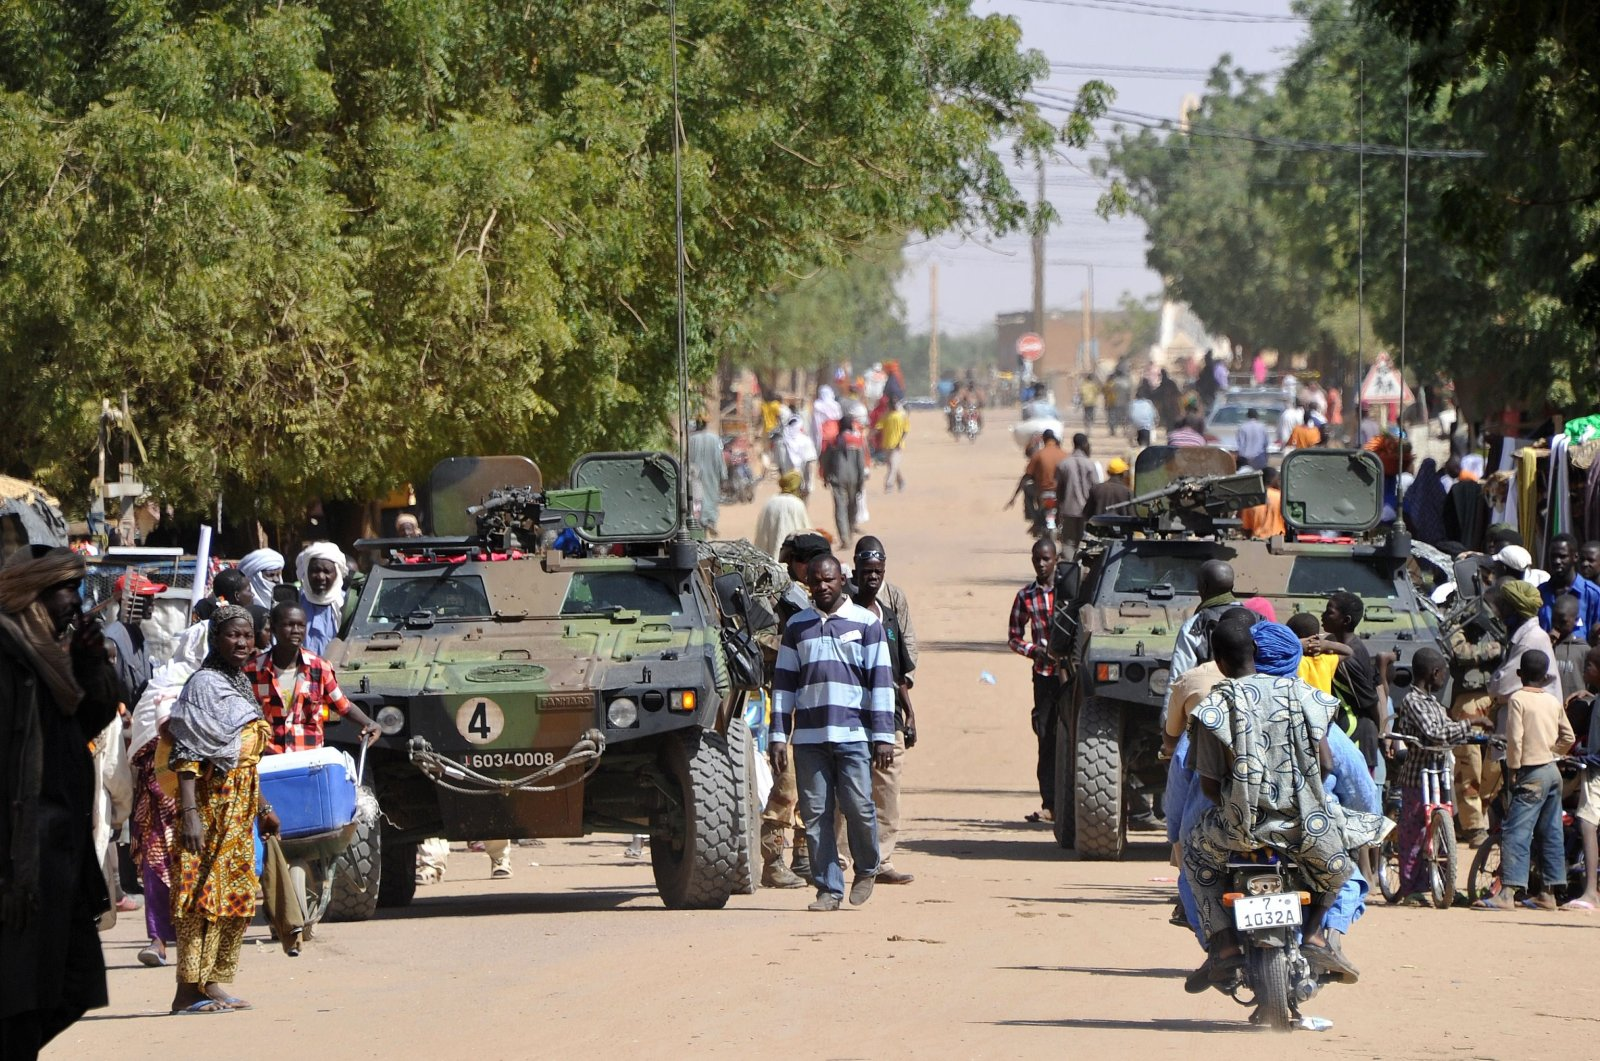 French troops patrol in the streets of Gao, Mali, Feb. 3, 2013. (AFP Photo)